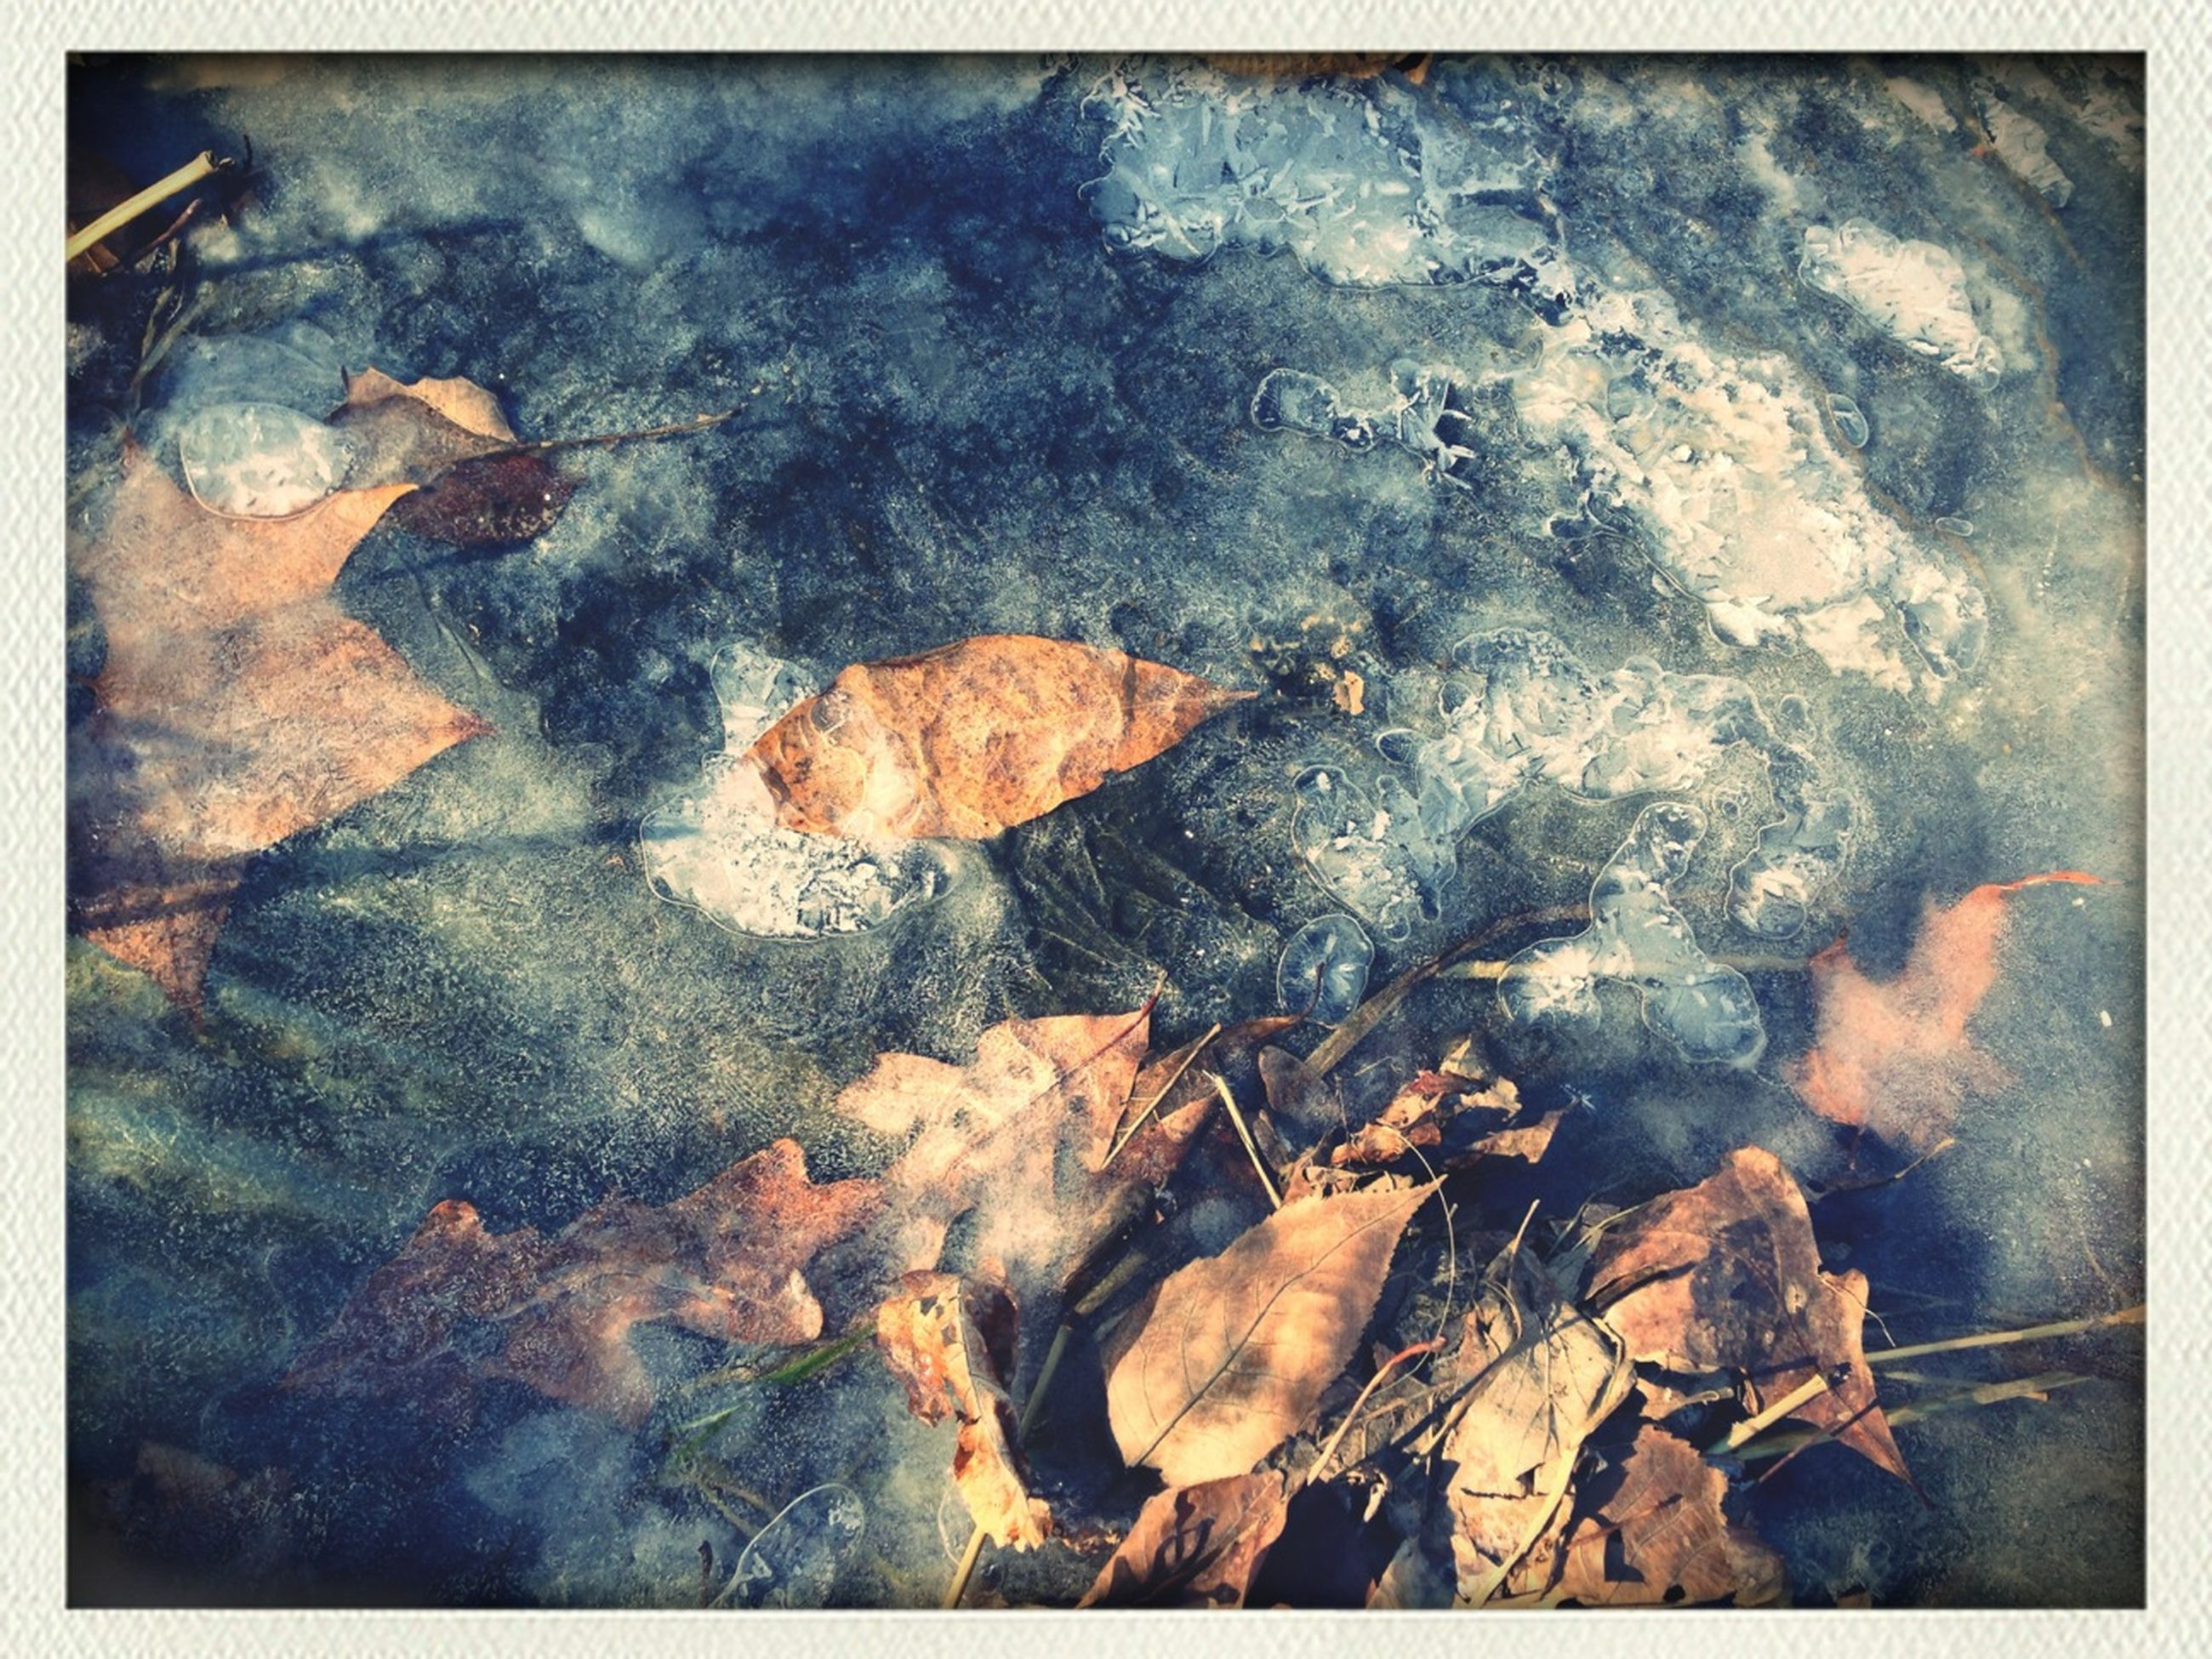 transfer print, auto post production filter, high angle view, leaf, water, dry, nature, close-up, ground, leaves, autumn, outdoors, no people, reflection, fallen, rock - object, day, change, wet, pond